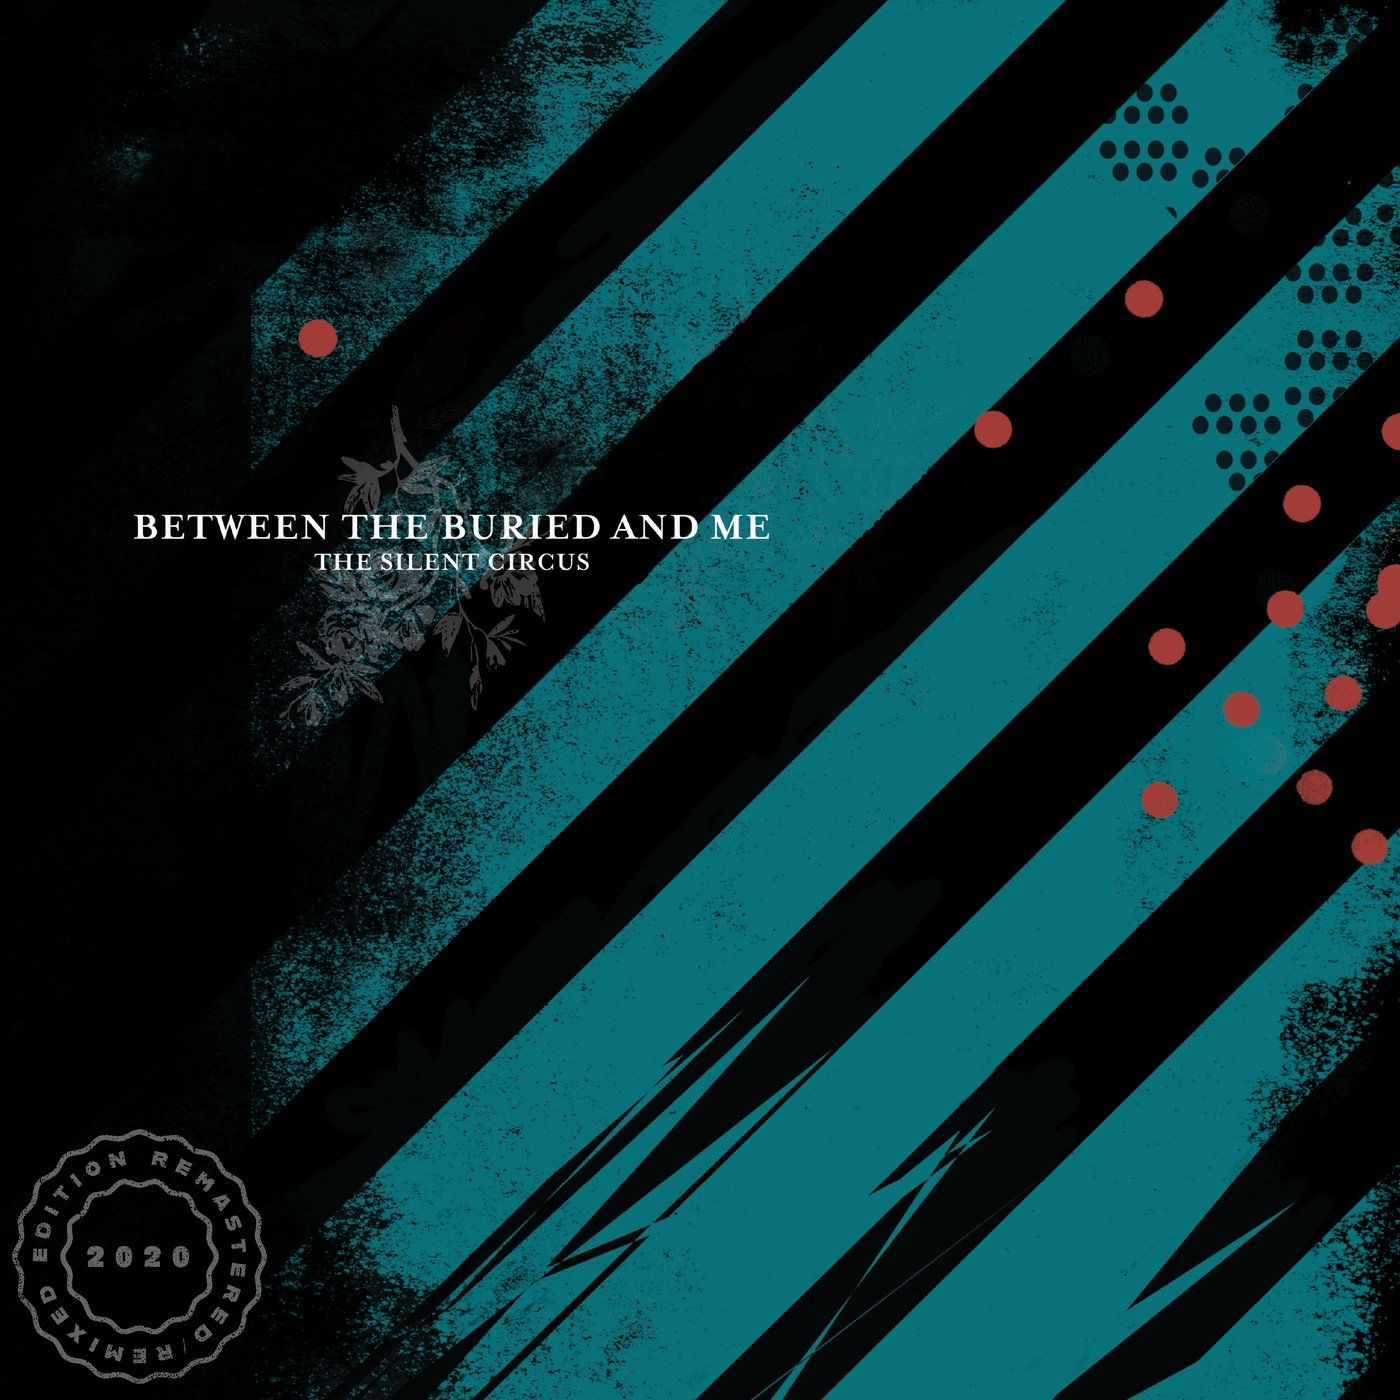 Between the Buried and Me - The Silent Circus (2020 Remix / Remaster) (2020)